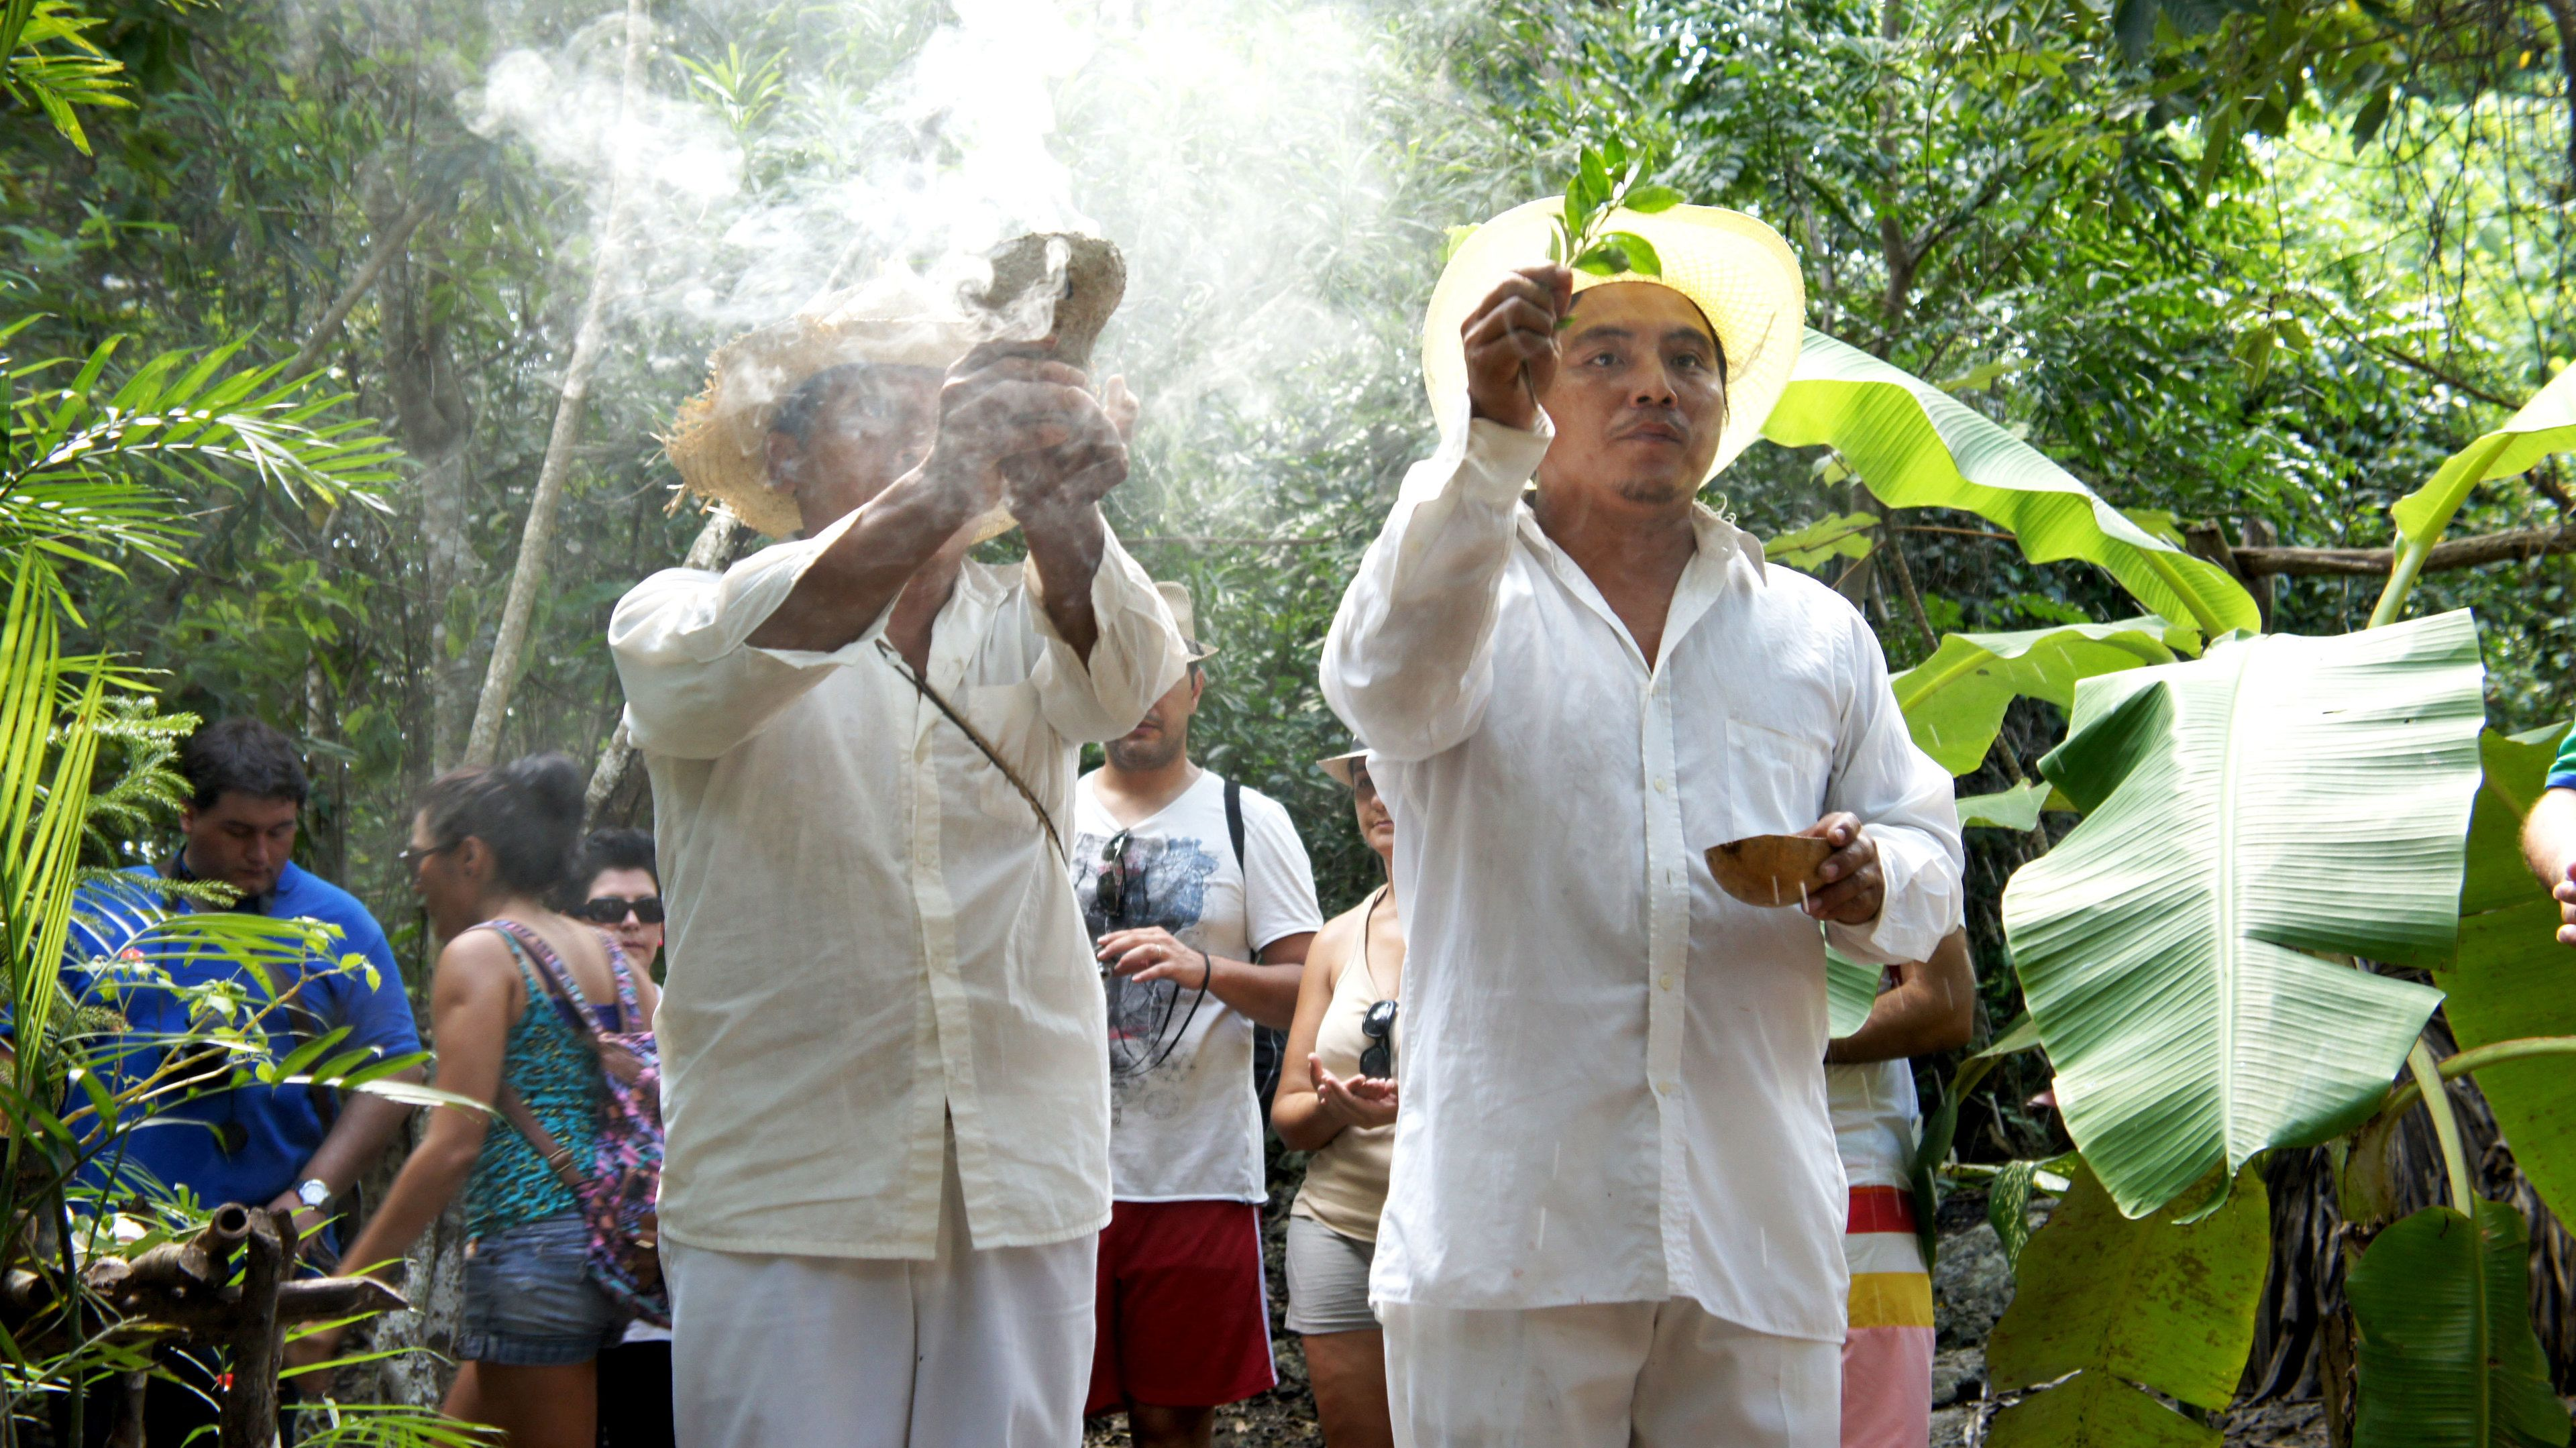 Mayan ceremony being performed by locals in Coba